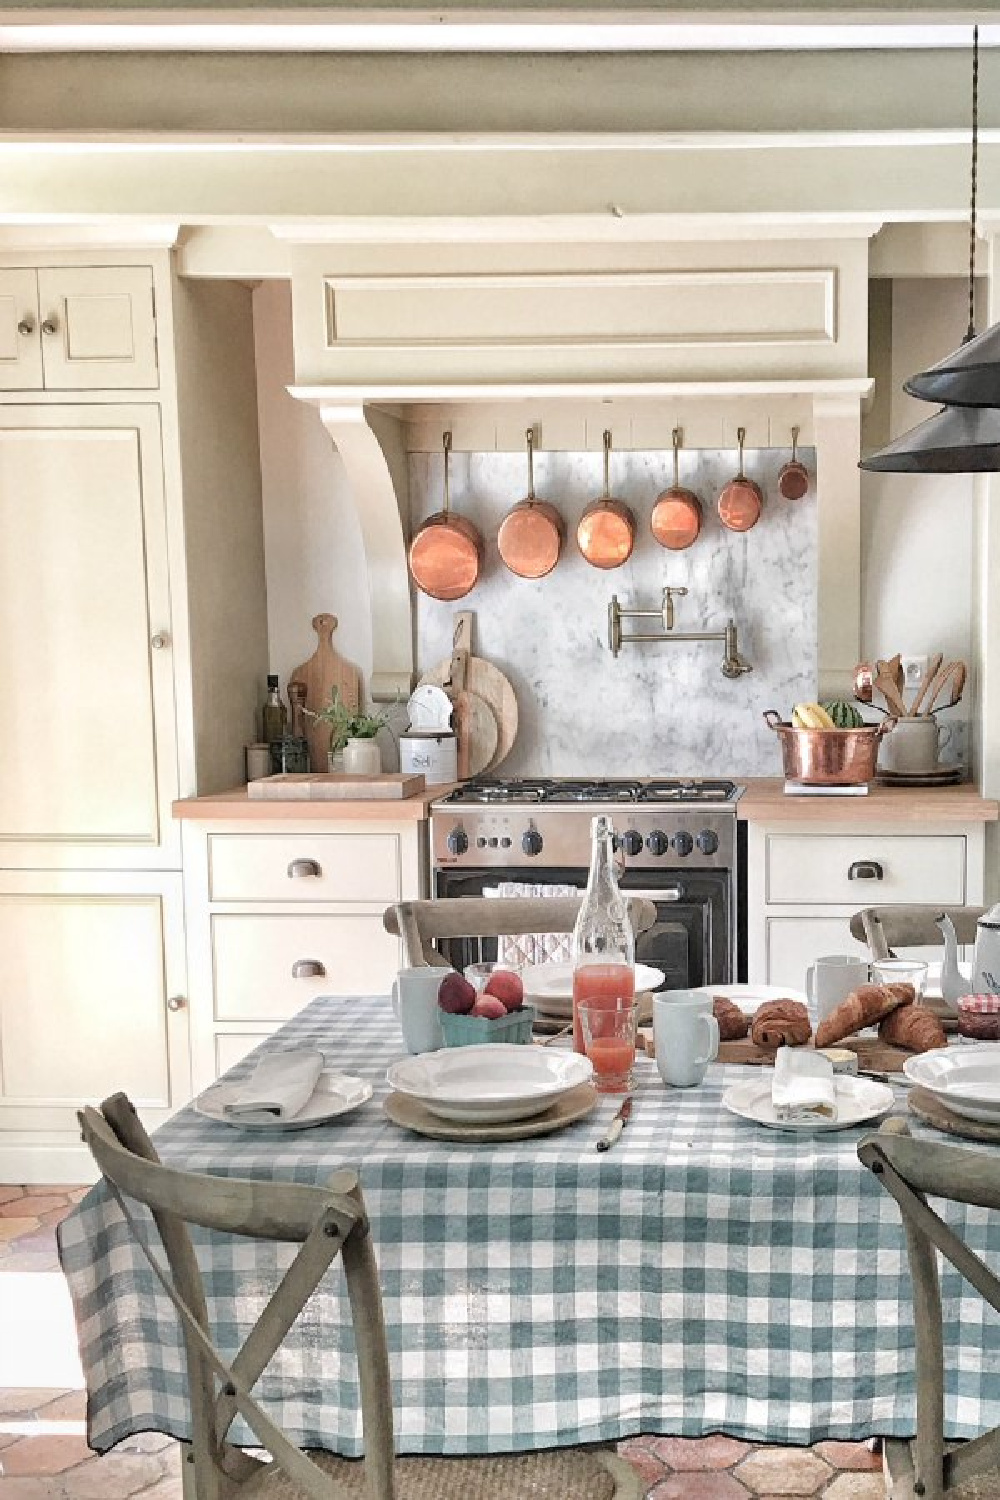 French kitchen with limestone colored painted cabinets, wood countertop, modern range, and romantic linens from Vivi et Margot. #frenchkitchen #frenchfarmhouse #kitchendesign #romantickitchen #interiordesign #kitchendesign